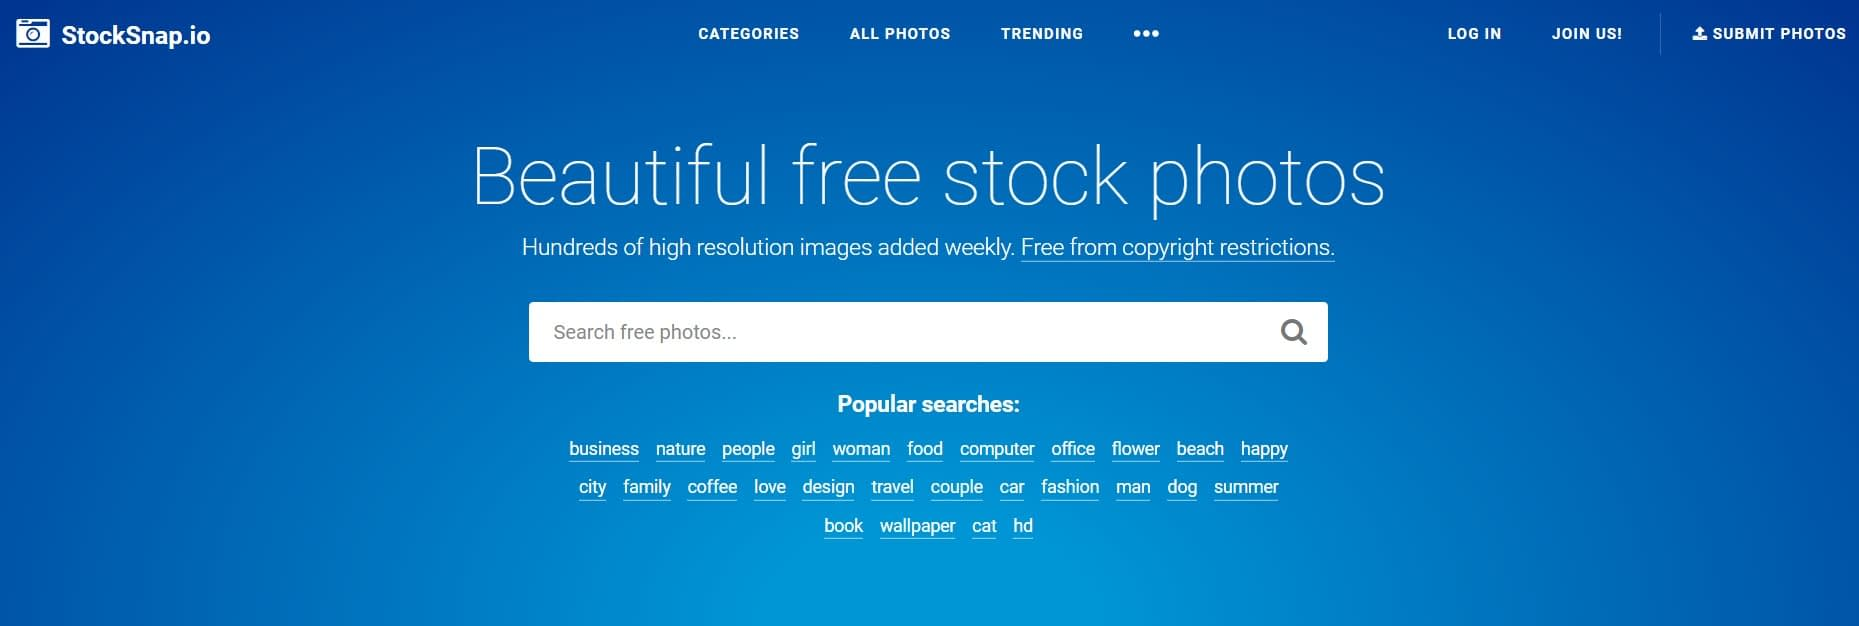 StockSnap is one of the Best Free Stock Photo Sites